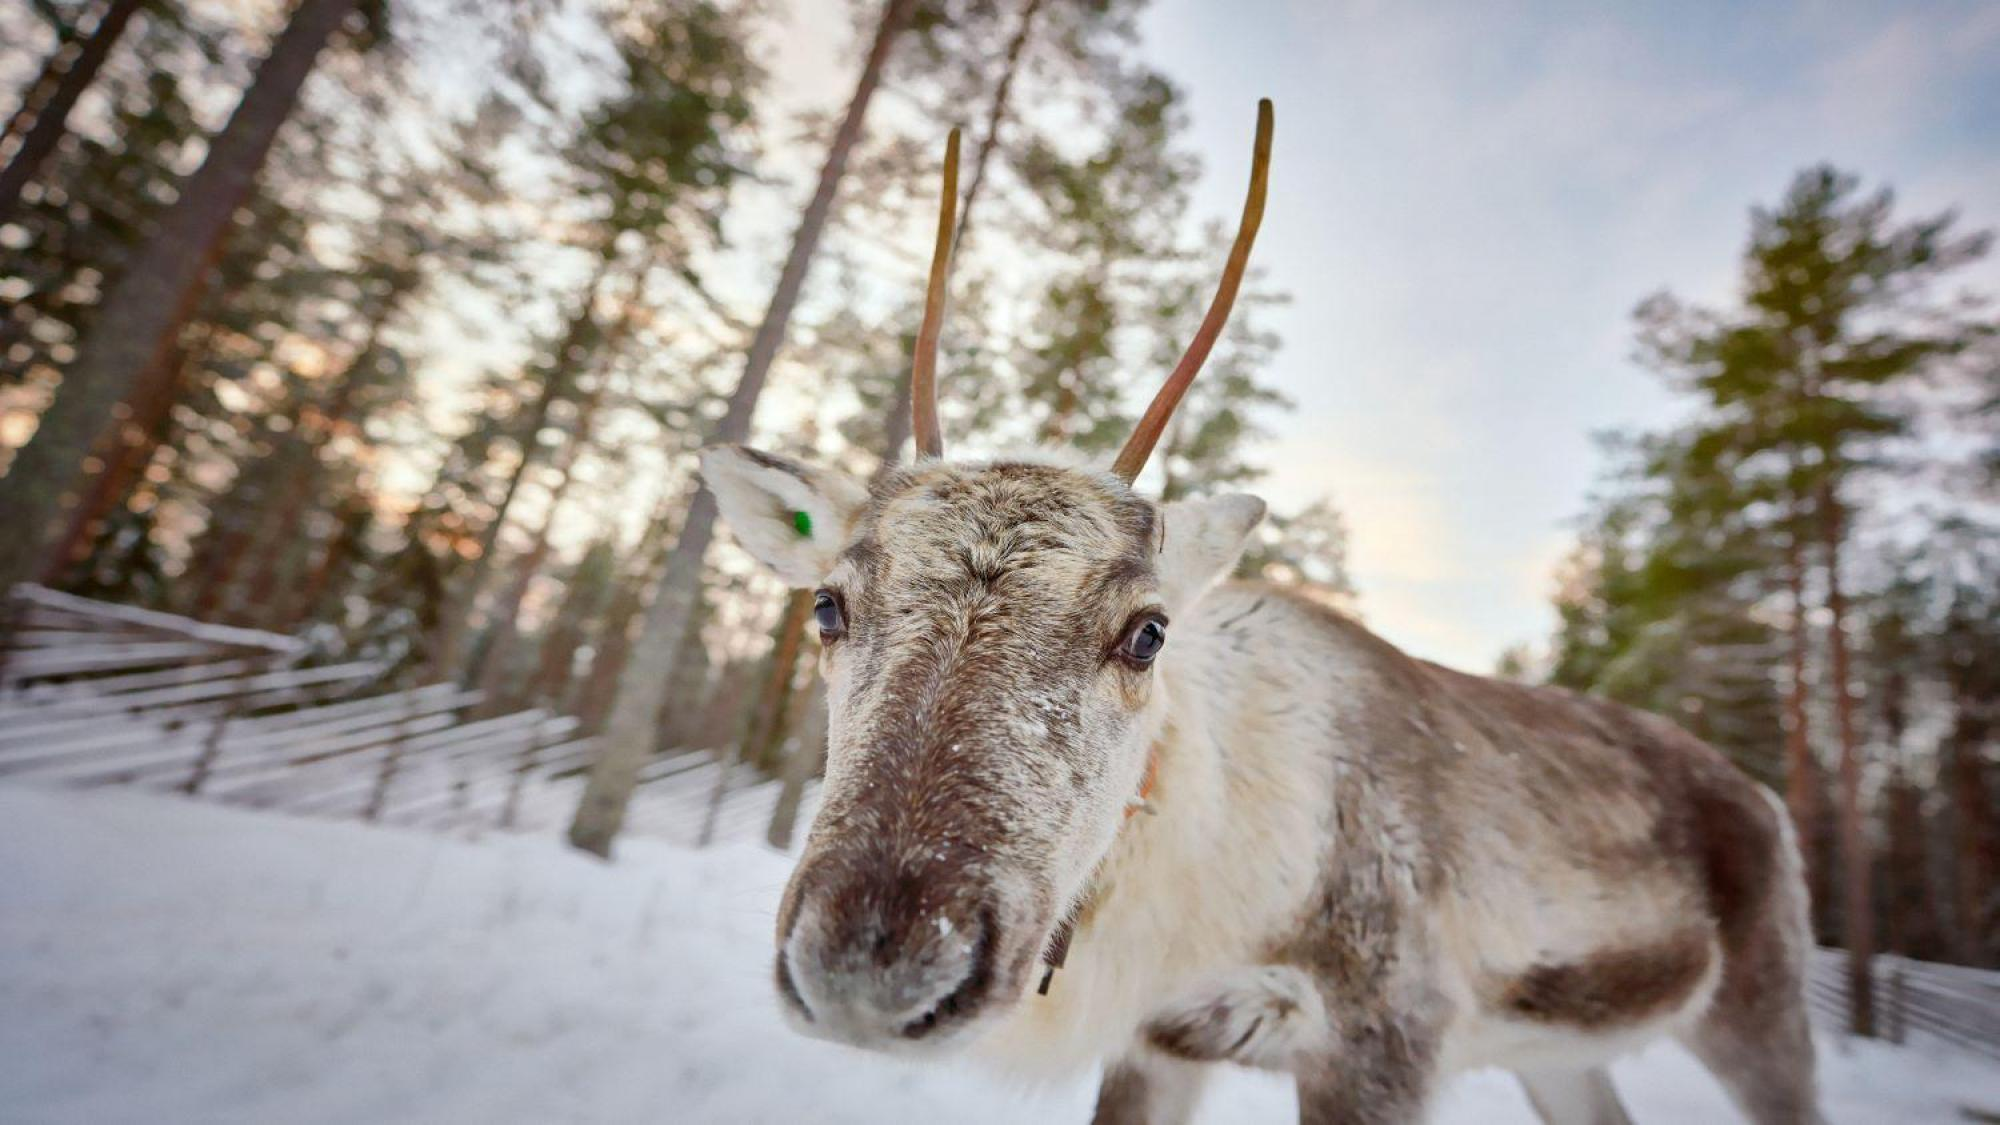 Reindeer looking at the camera in snowy winter environment.